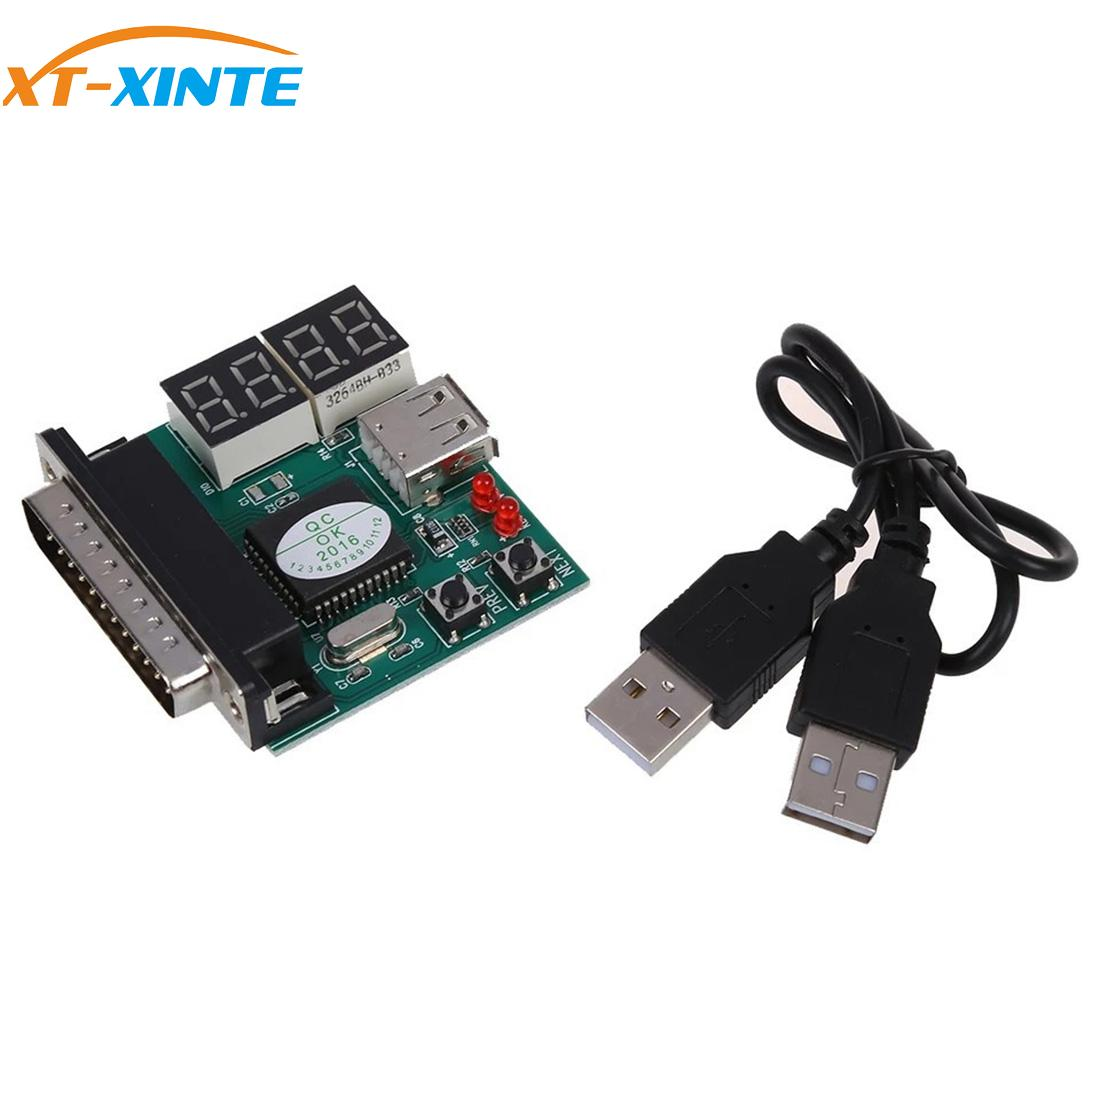 XT-XINTE Computer 4-Digit Laptop PC Motherboard USB& PCI Analyser Diagnostic Test Post Card Tester For Notebook Laptop